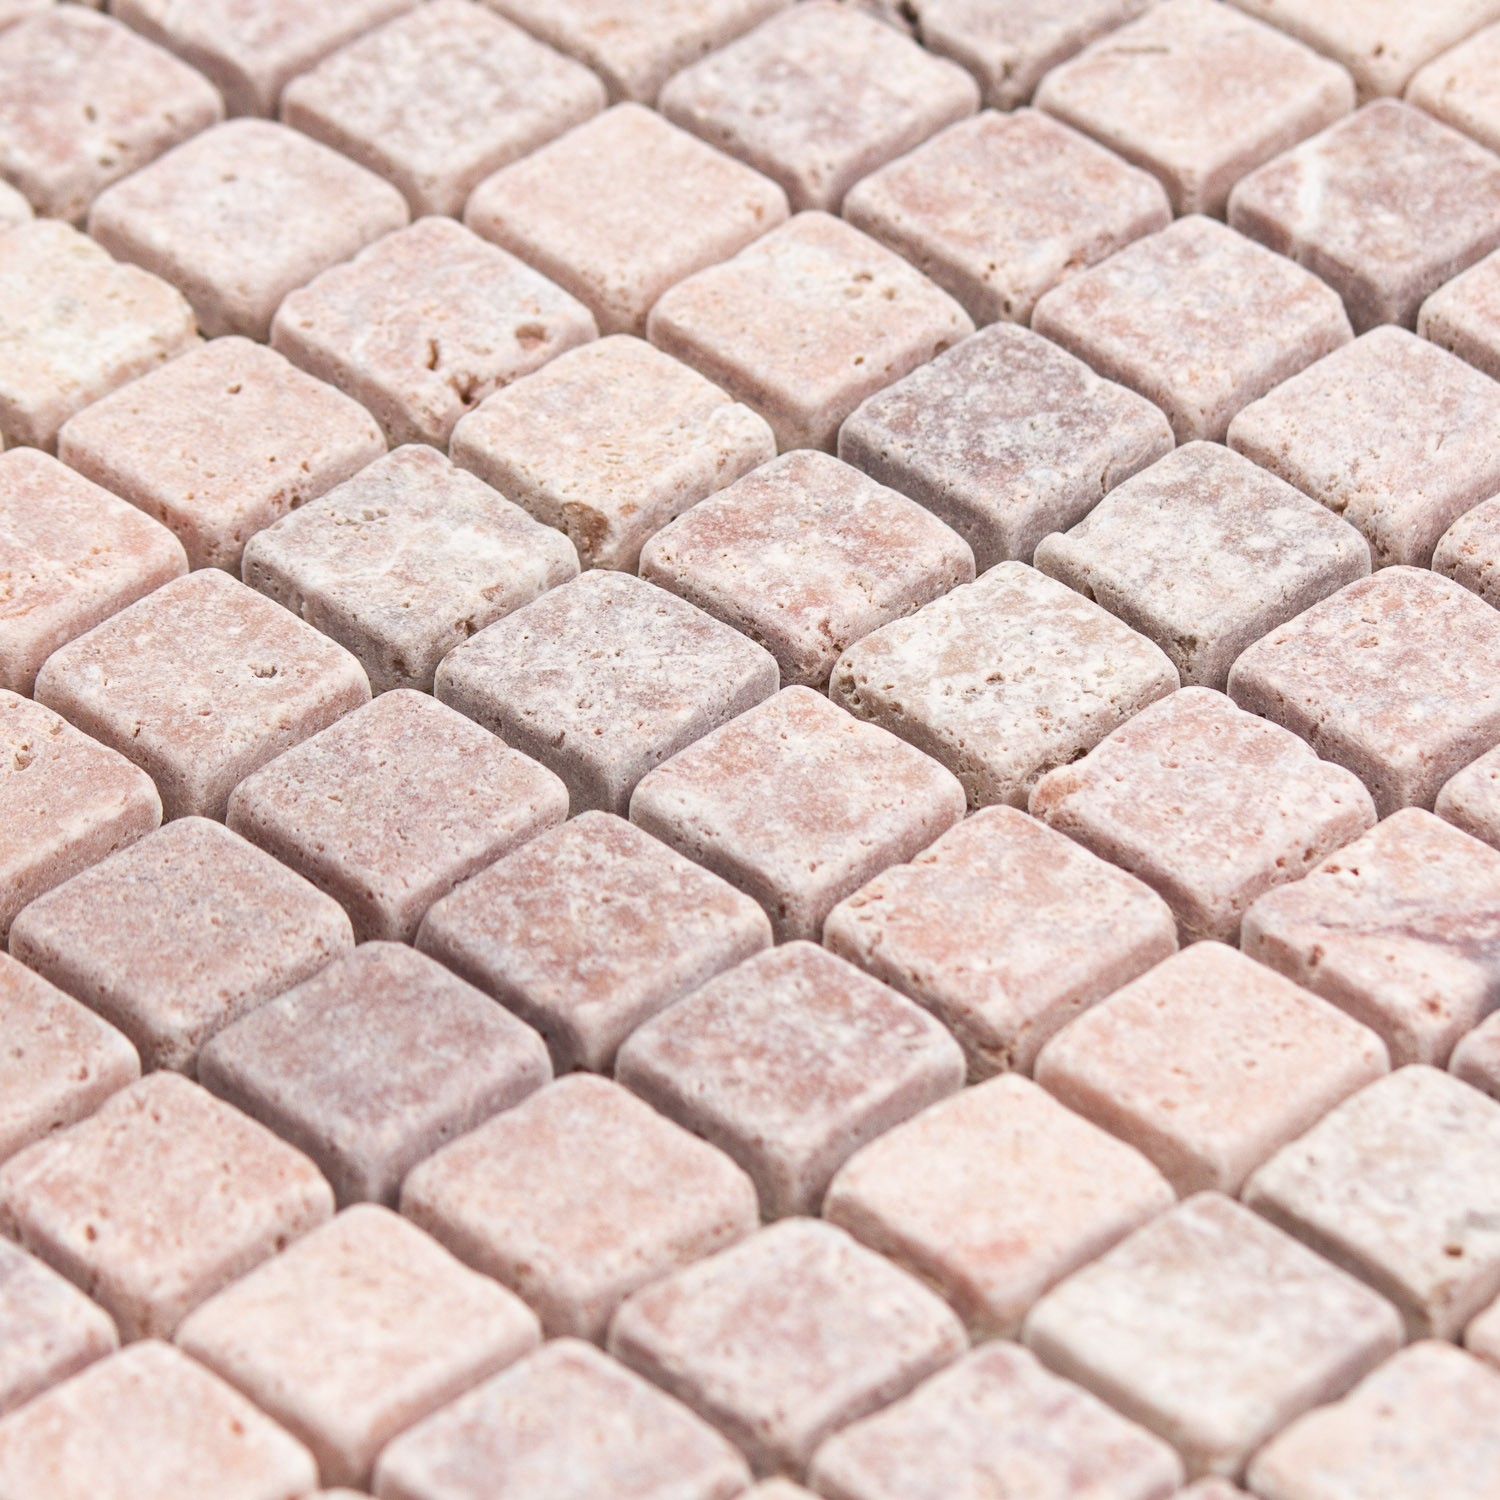 Mosaique Brico Depot Carrelage Travertin Brico Depot Great Carrelage Gres